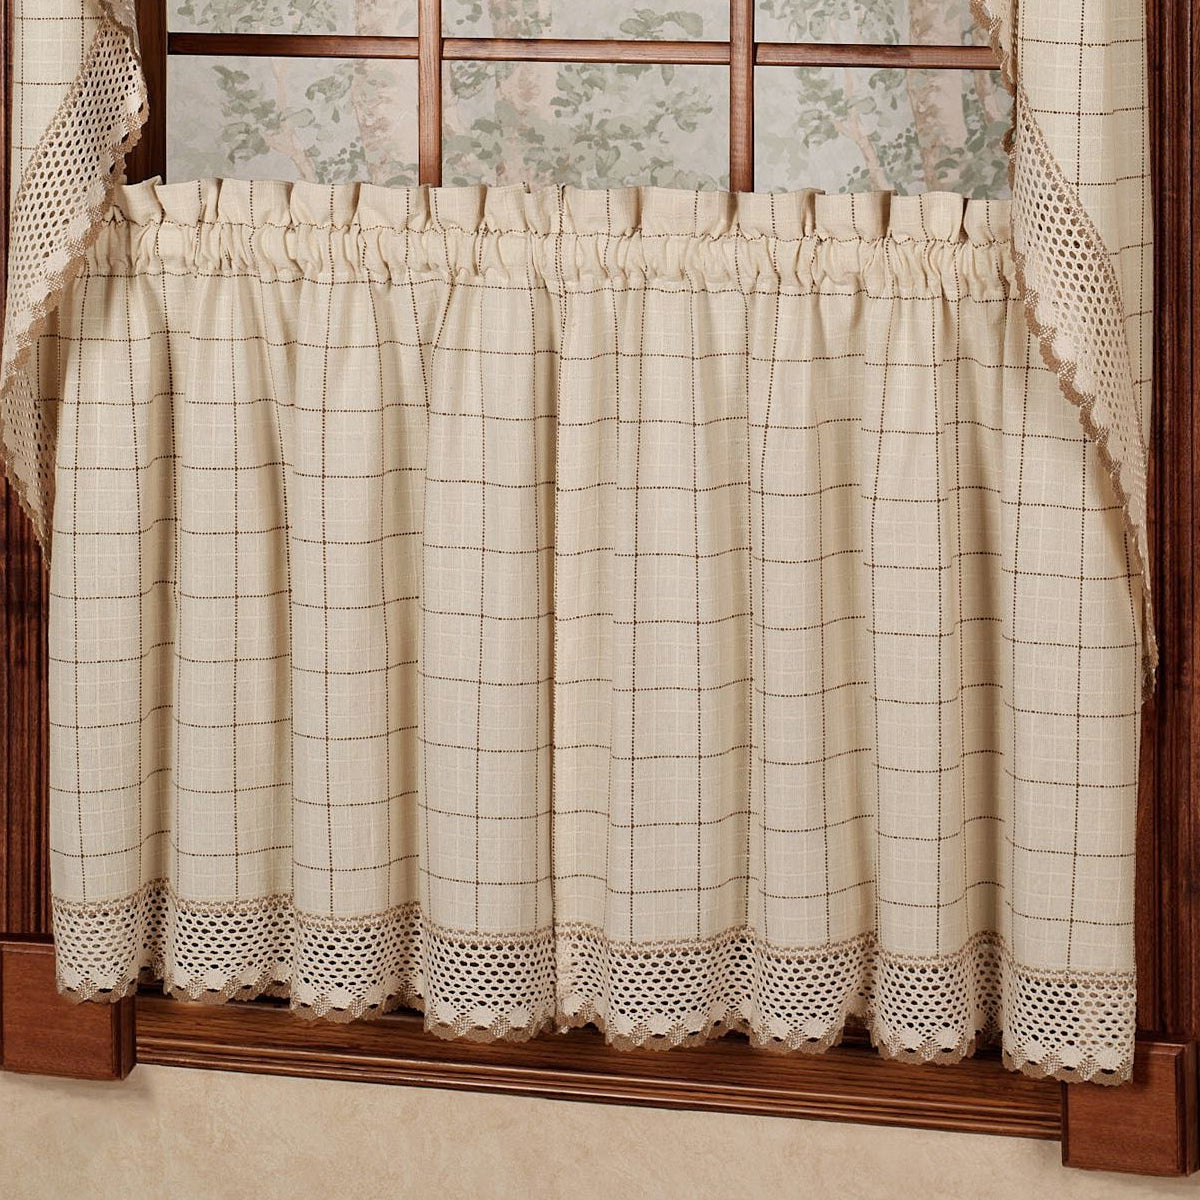 French Vanilla Country Style Curtain Parts With White Daisy Lace Accent With Regard To Newest Cotton Classic Toast Window Pane Pattern And Crotchet Trim Tiers, Swags And  Valance Options (View 8 of 20)